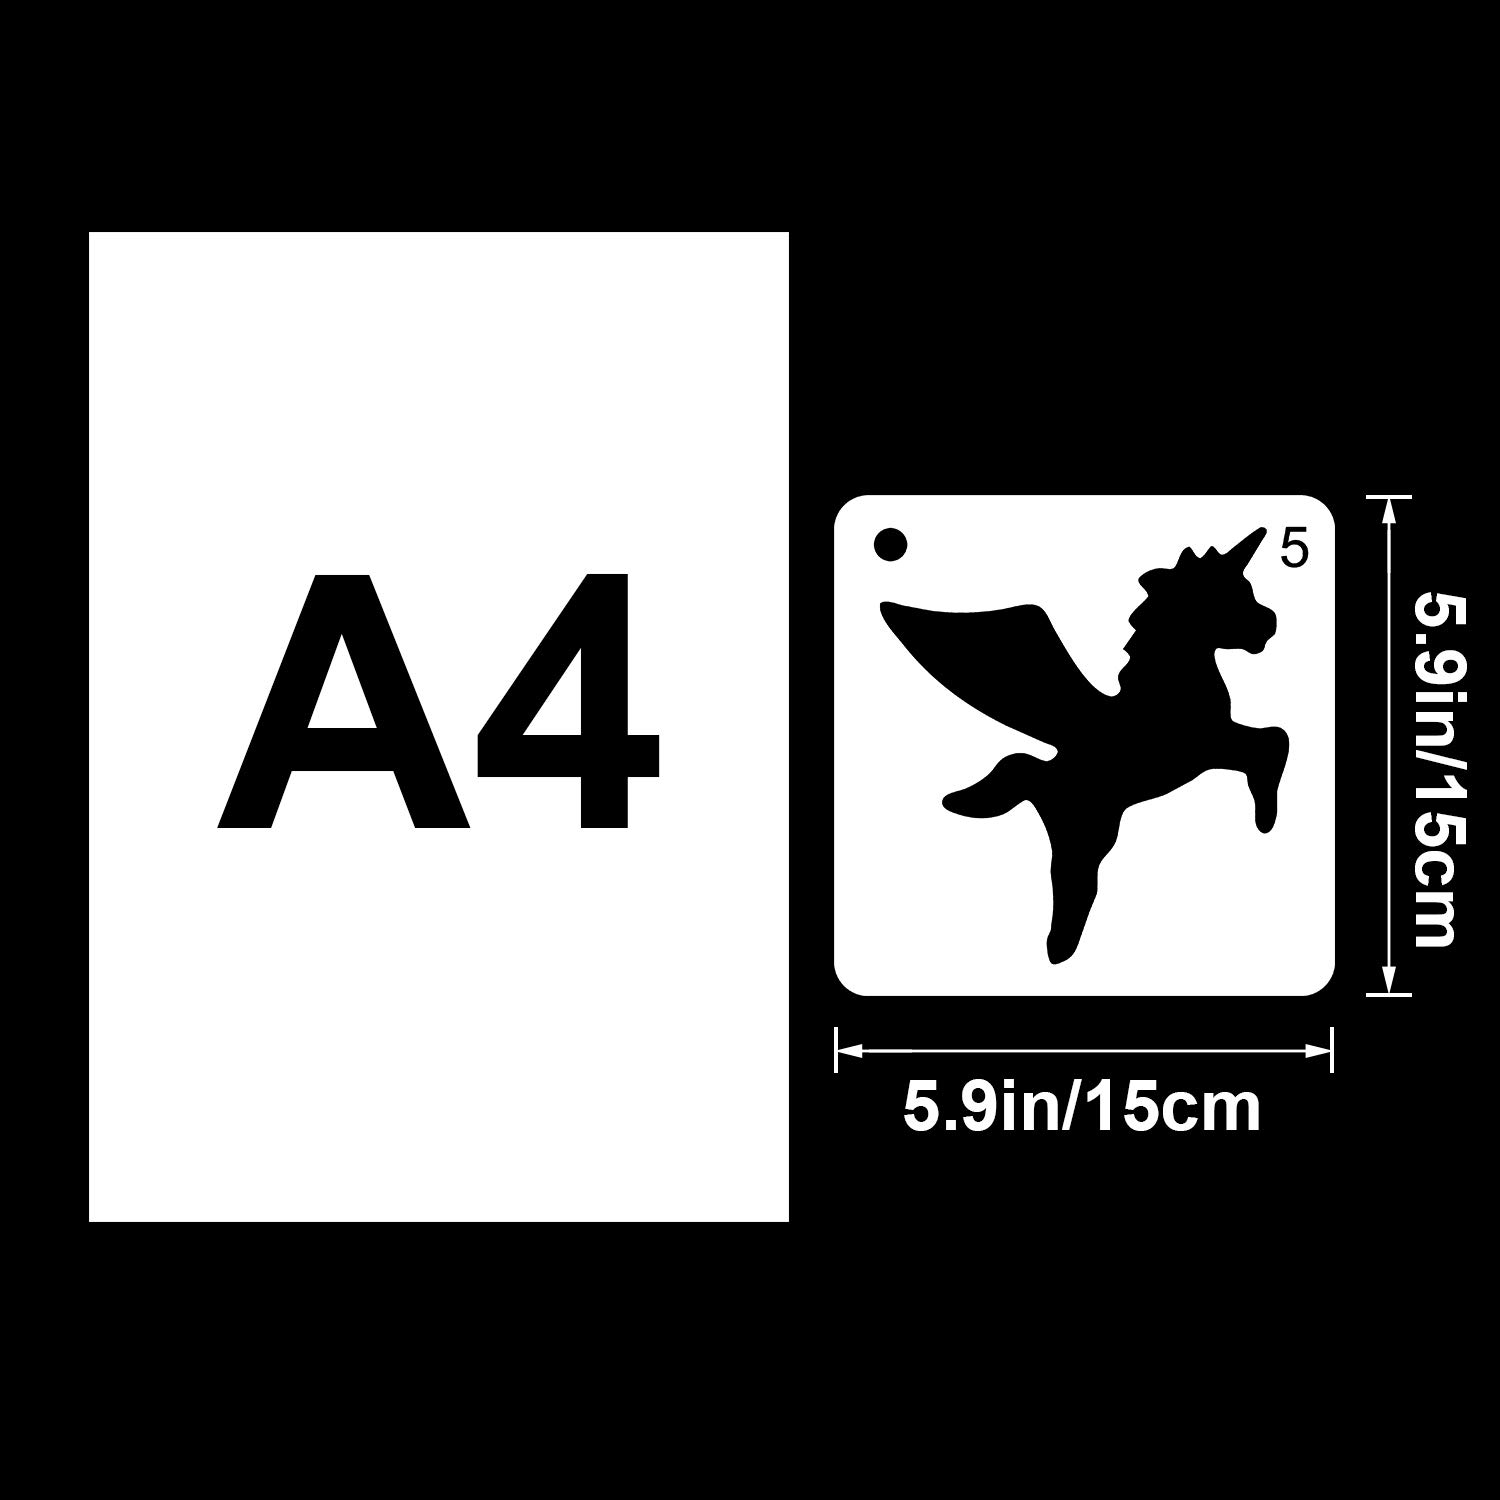 9 Pieces Unicorn Stencils Plastic Kids Drawing Stencil Reusable Unicorn Template for DIY Craft Painting Drawing